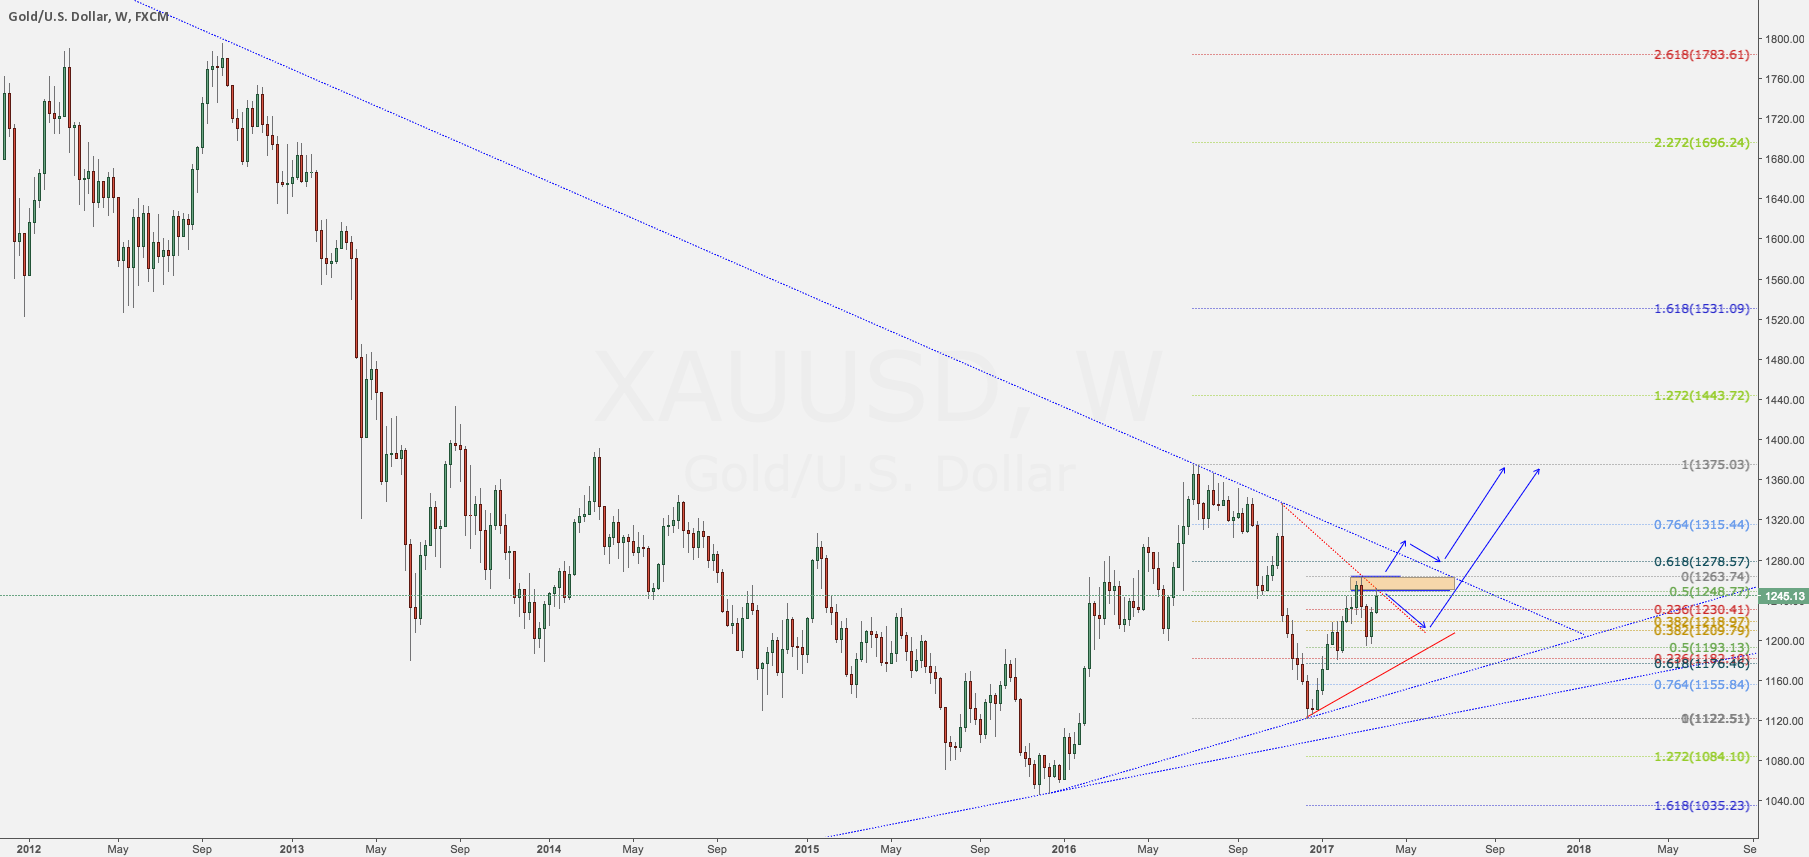 Gold Outlook Post-March Rate Hikes